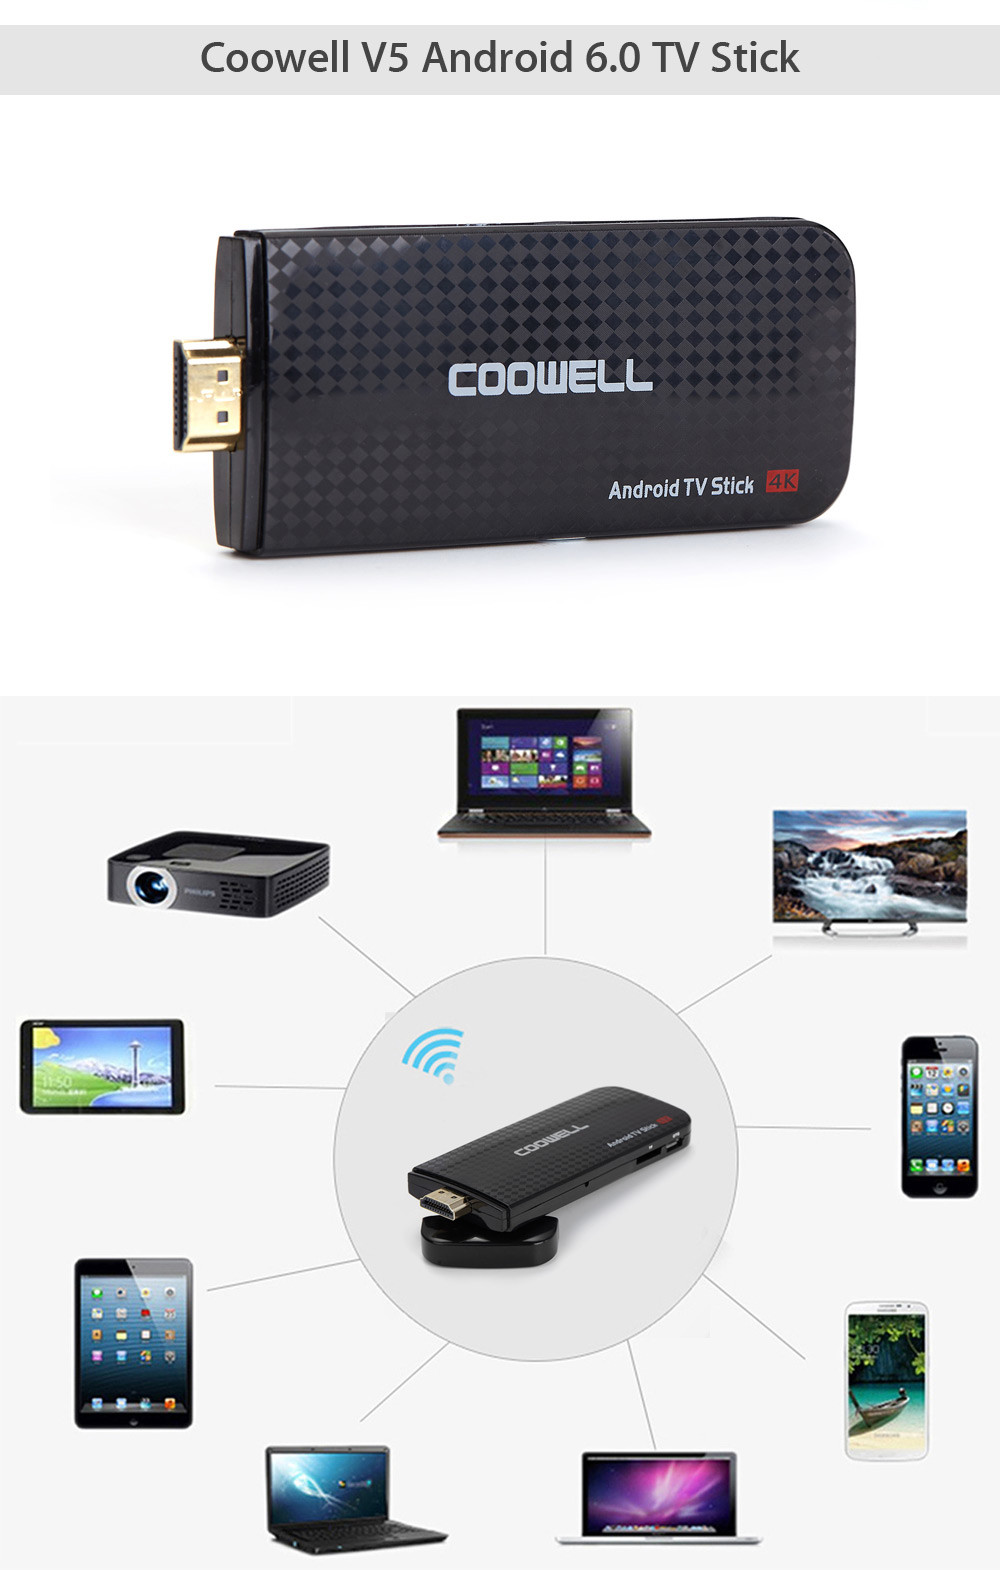 Coowell V5 Android 6.0 TV Stick Amlogic S905X Quad-core 2.4G WiFi HDMI Streaming Media Player Support DLNA 3D Movie